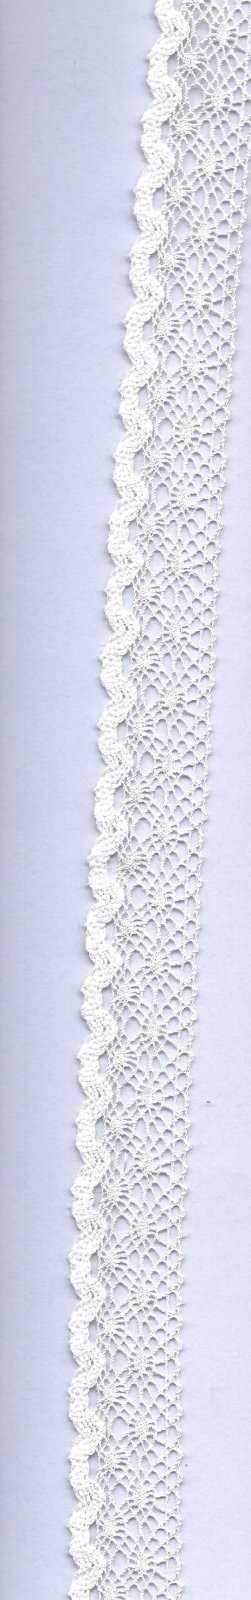 PFA COTTON LACE TRIM 20mm col. 051